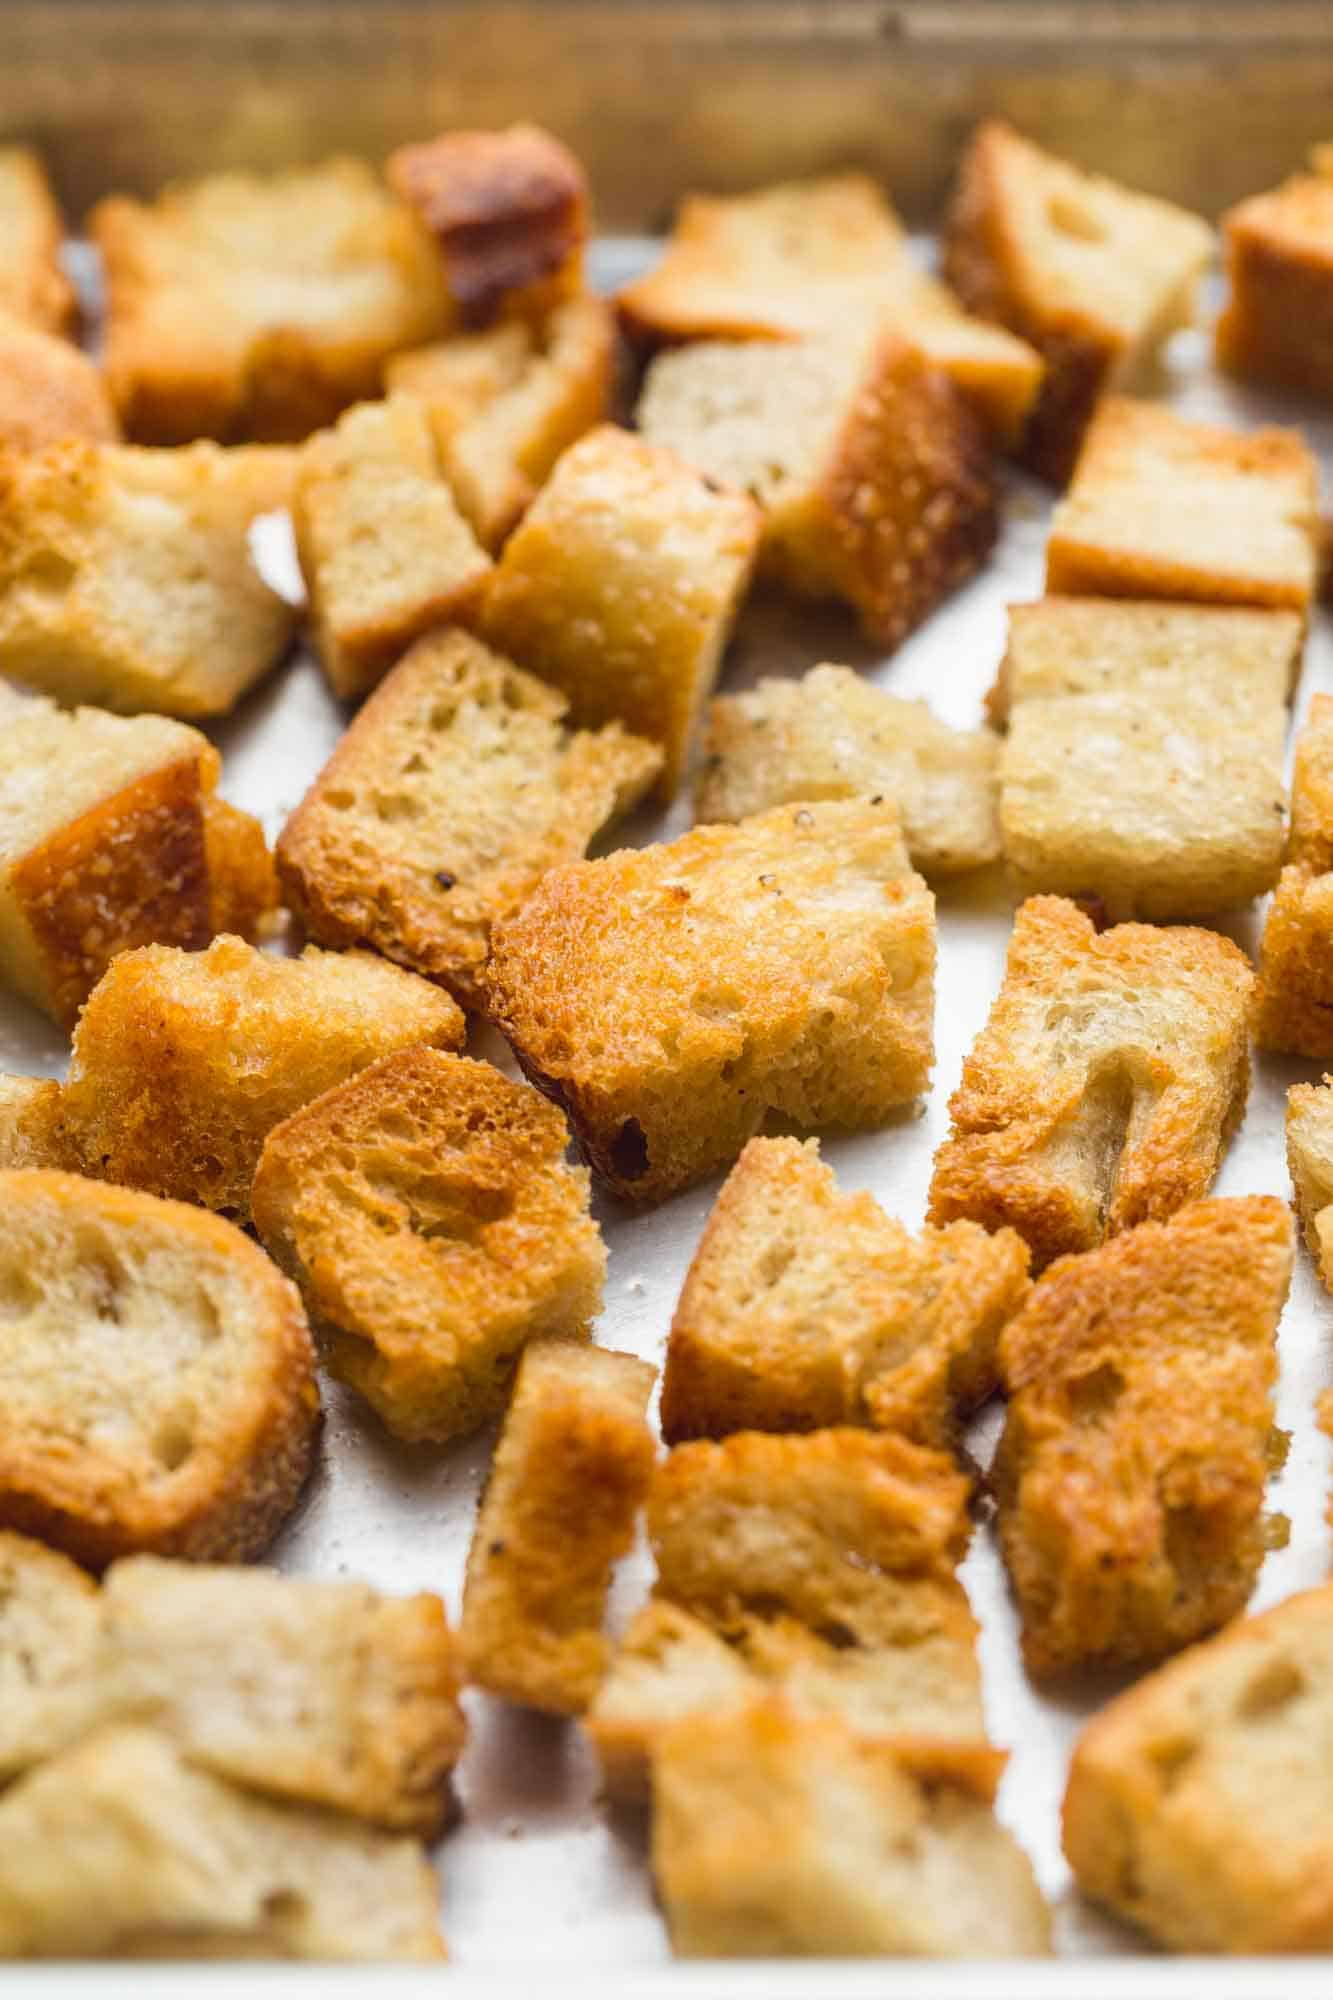 Close up shot of homemade toasted croutons on a baking sheet